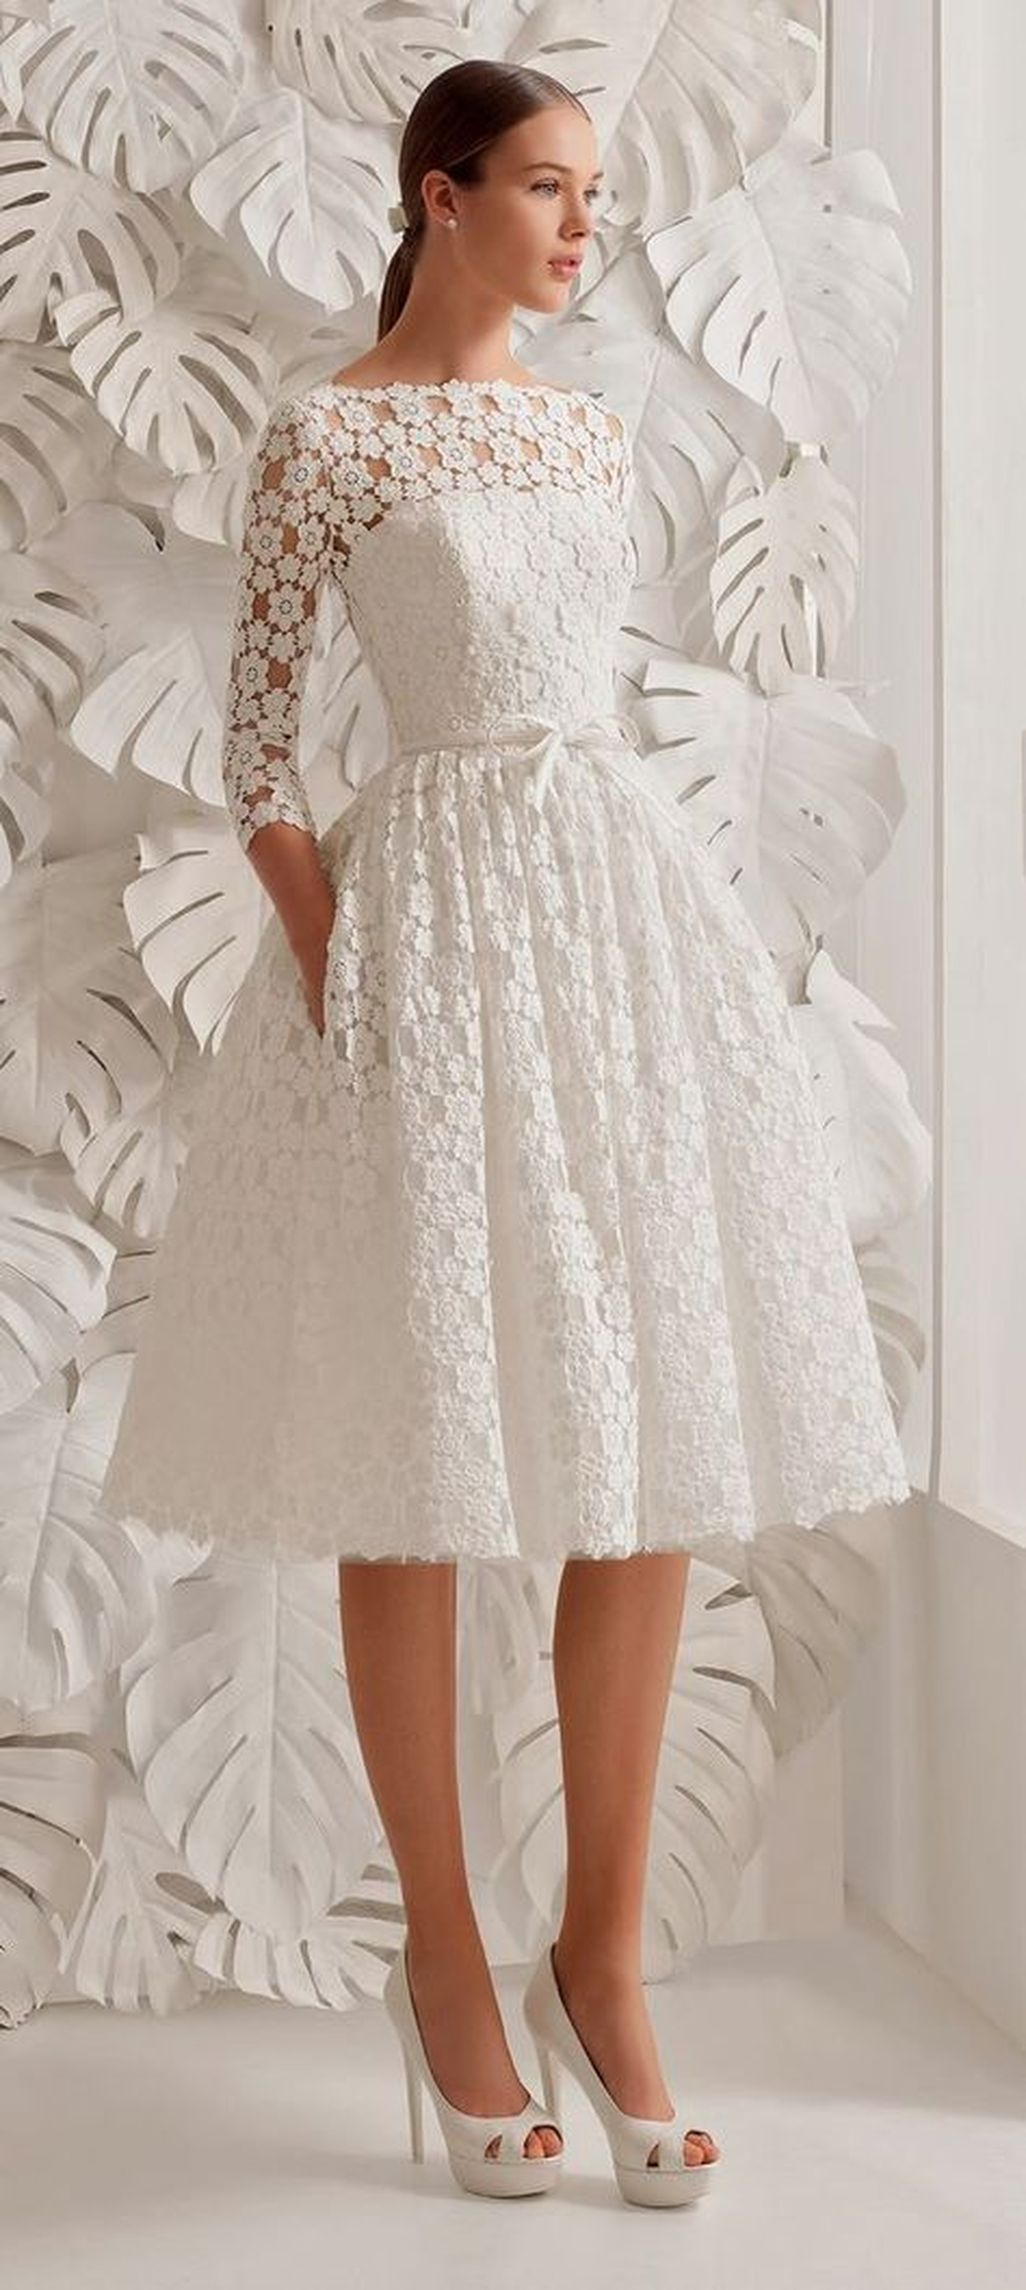 Awesome short wedding dresses ideas for your wedding day more at